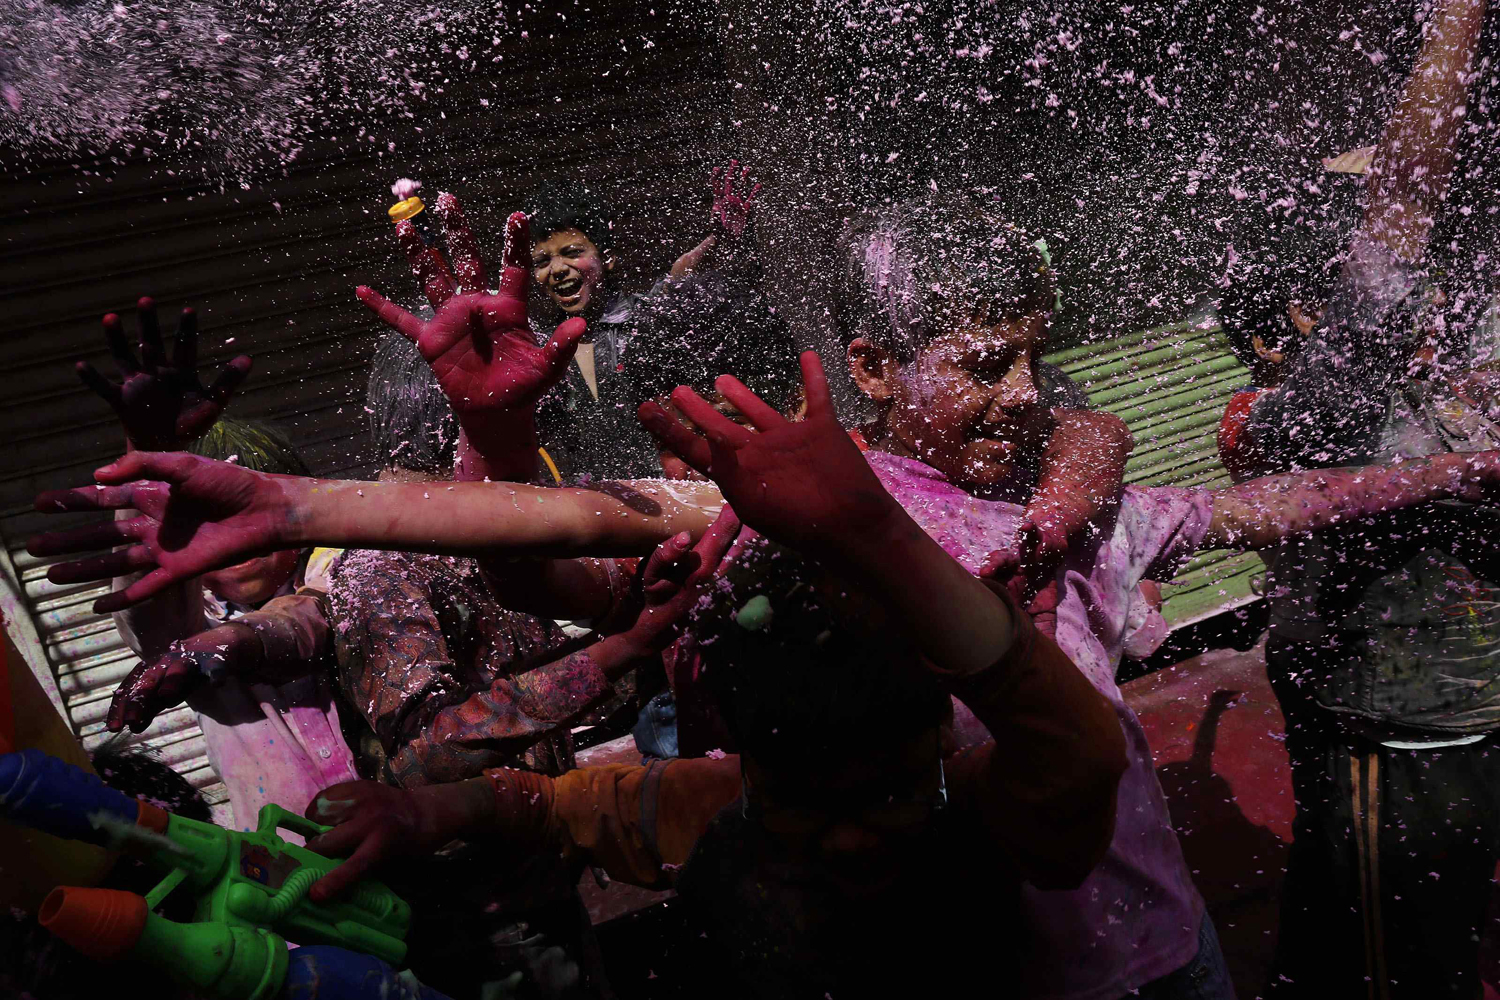 March 26, 2013. Boys spray coloured foam during Holi celebrations at a lane near the Bankey Bihari temple in Vrindavan, in the northern Indian state of Uttar Pradesh.